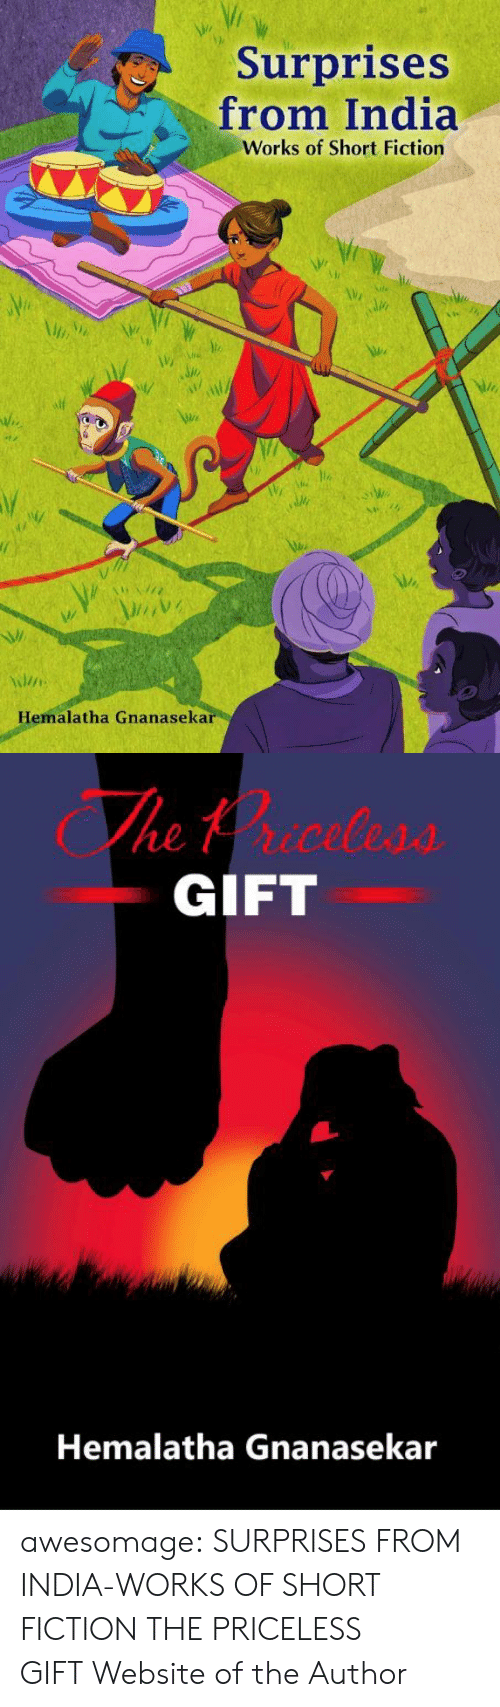 Surprises: Surprises  from India  Works of Short Fiction  Hemalatha Gnanasekar   The trceless  GIFT  Hemalatha Gnanasekar awesomage:  SURPRISES FROM INDIA-WORKS OF SHORT FICTION THE PRICELESS GIFT Website of the Author